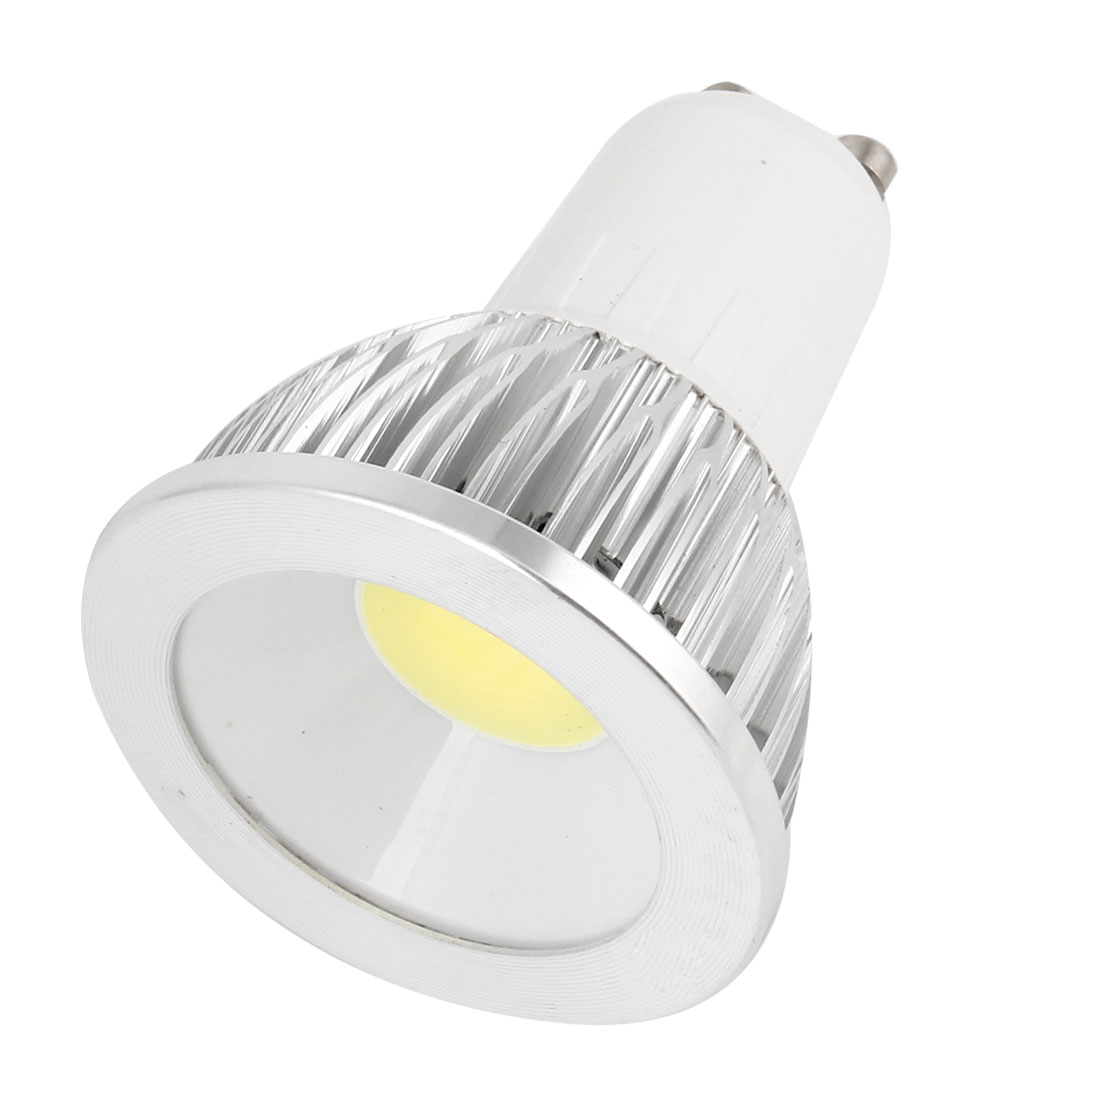 AC 85-265V 6W 360-390LM GU10 Dimmable Cool White Light COB LED Downlight Blub